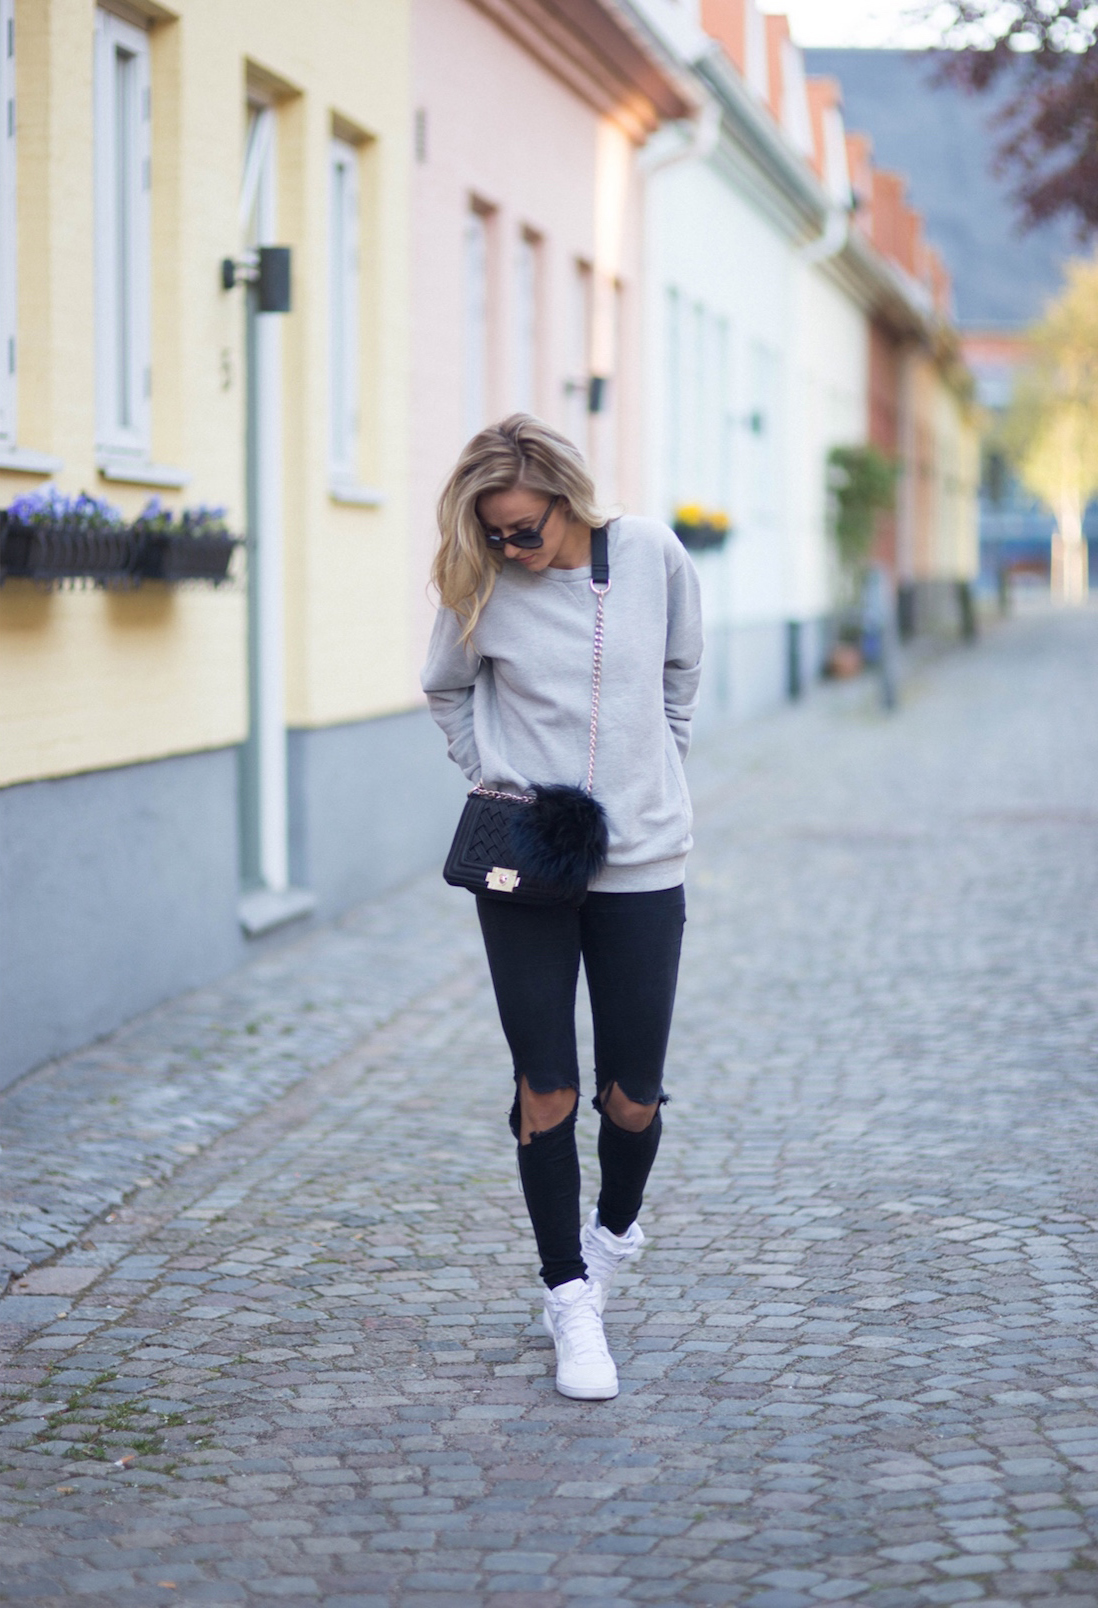 Black ripped knee skinny jeans, basket trainers and a grey sweatshirt. A simple, casual look for spring. Love the bag too. Via Sendi Skopljak Sweater: Zara, Bag: Persunmall, Jeans: Dr denim, Trainers: Nike, Sunglasses: Chanel